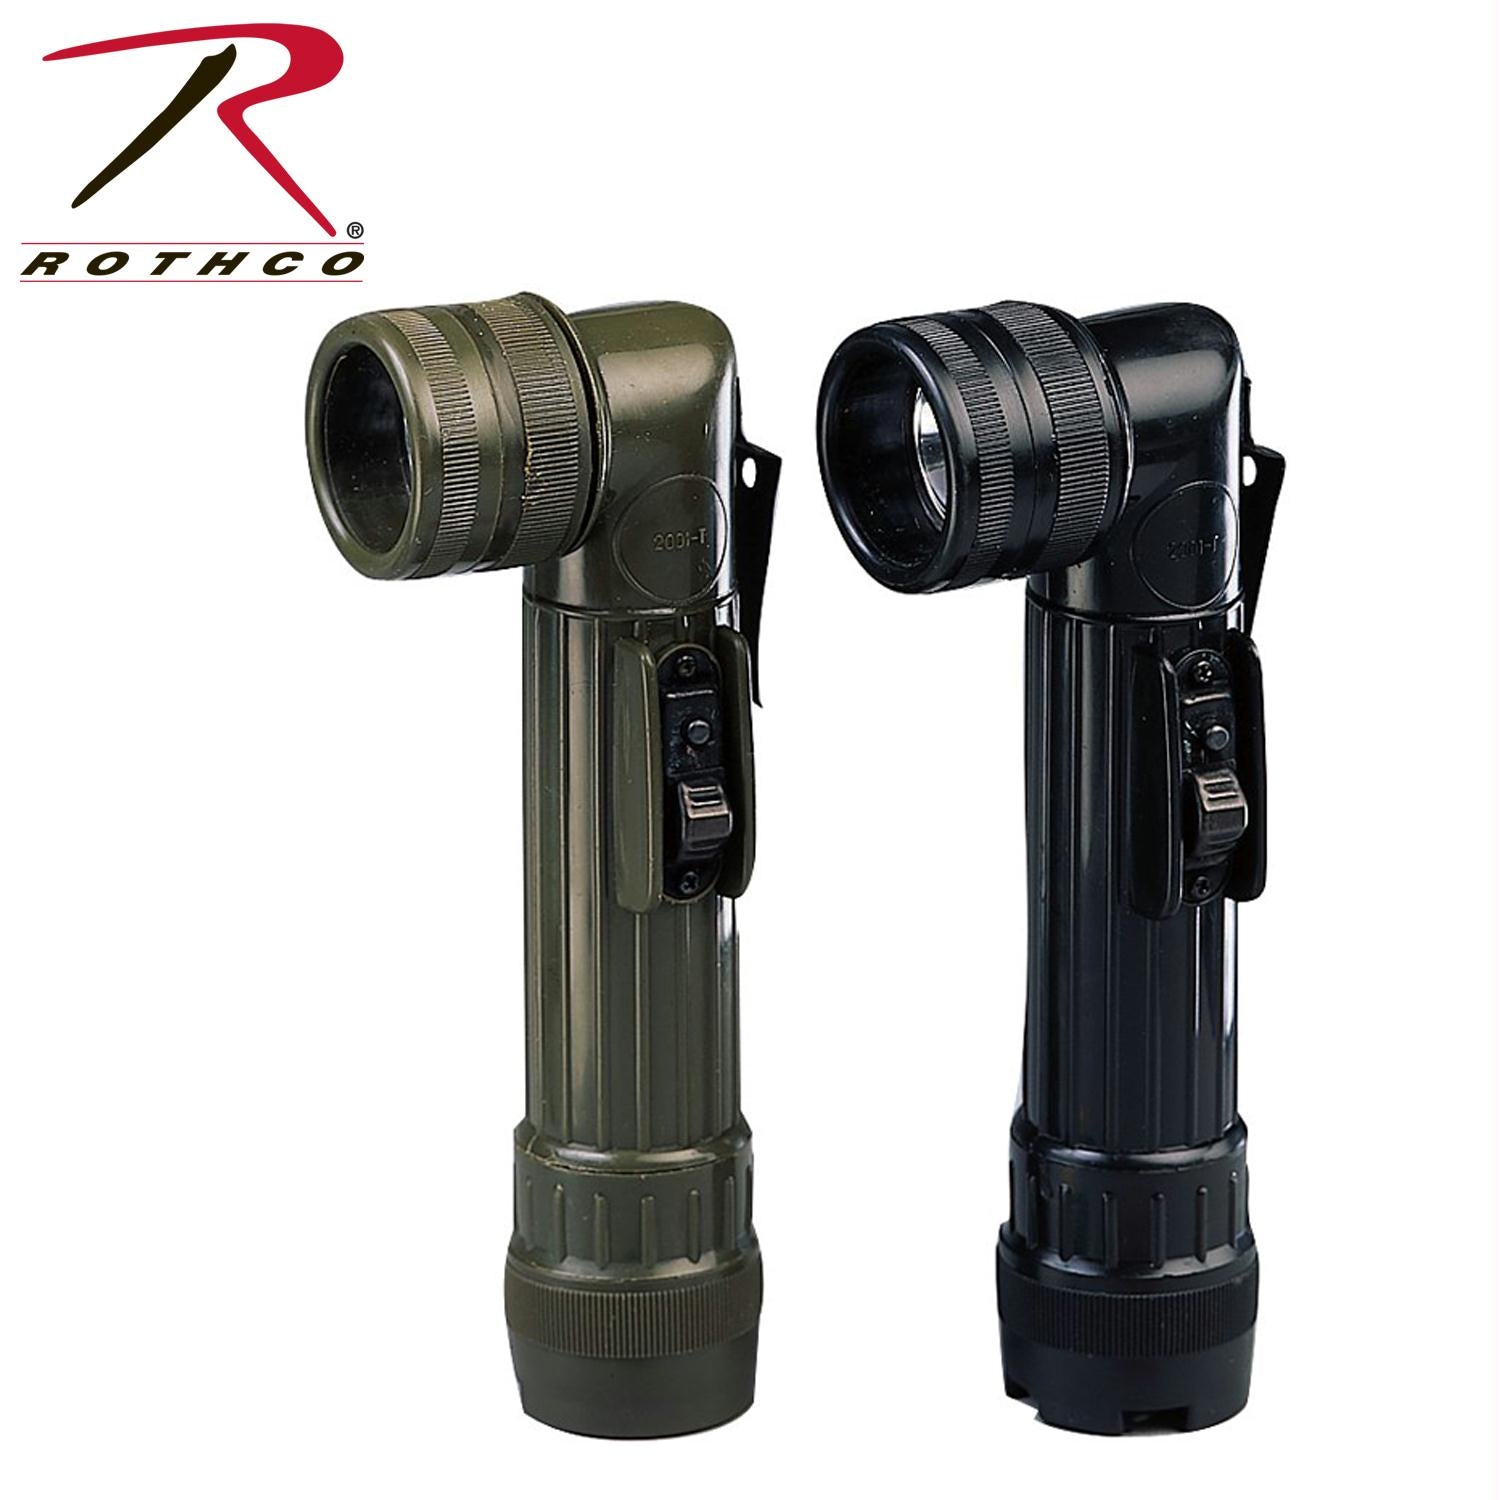 Rothco Army Style C-Cell Flashlights